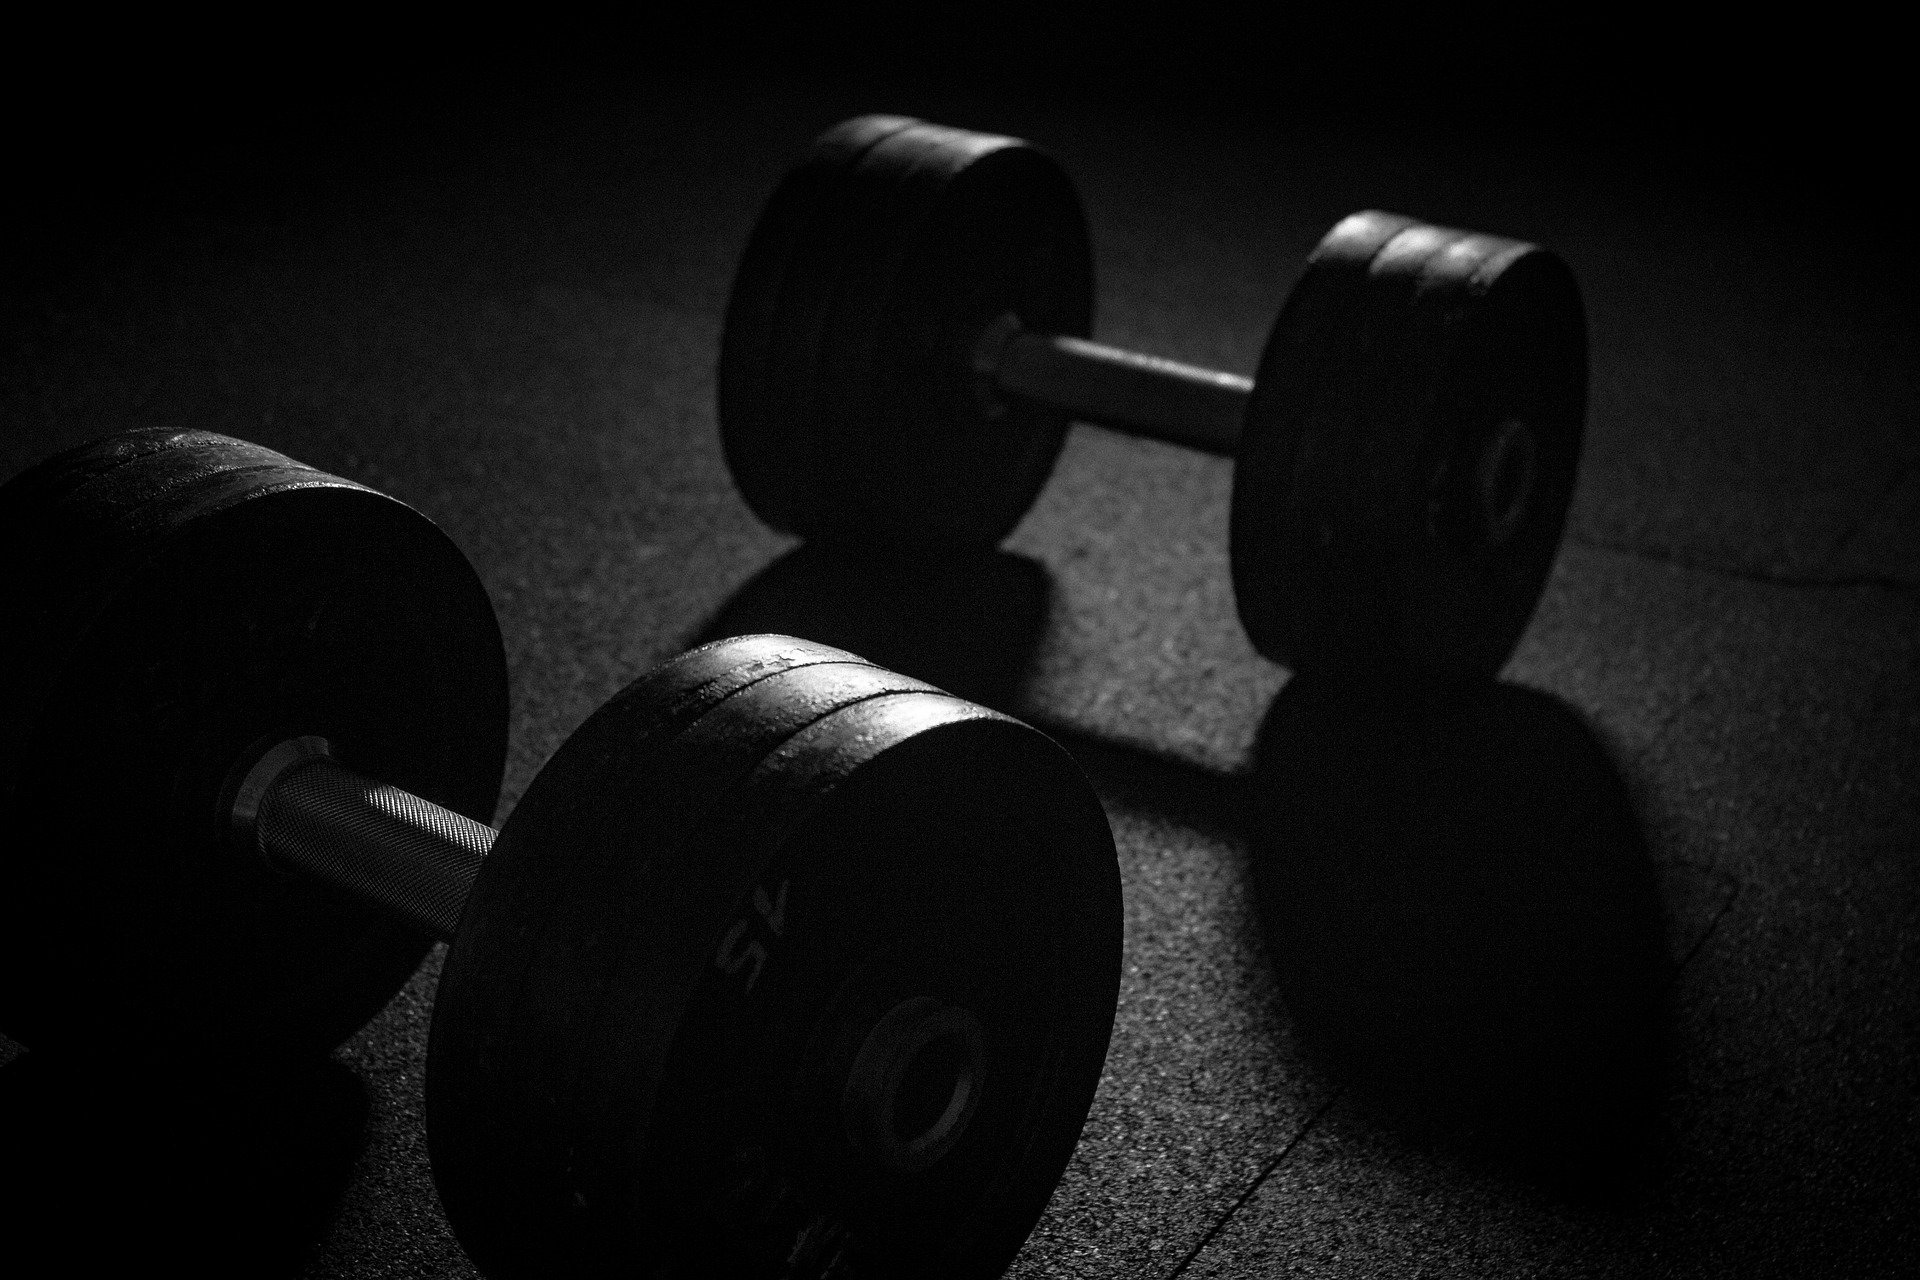 Two dumbbells on a gym floor. The picture has a dark tone to it: How To Throw a Baseball - FAST! [MindfuseBaseball.com]